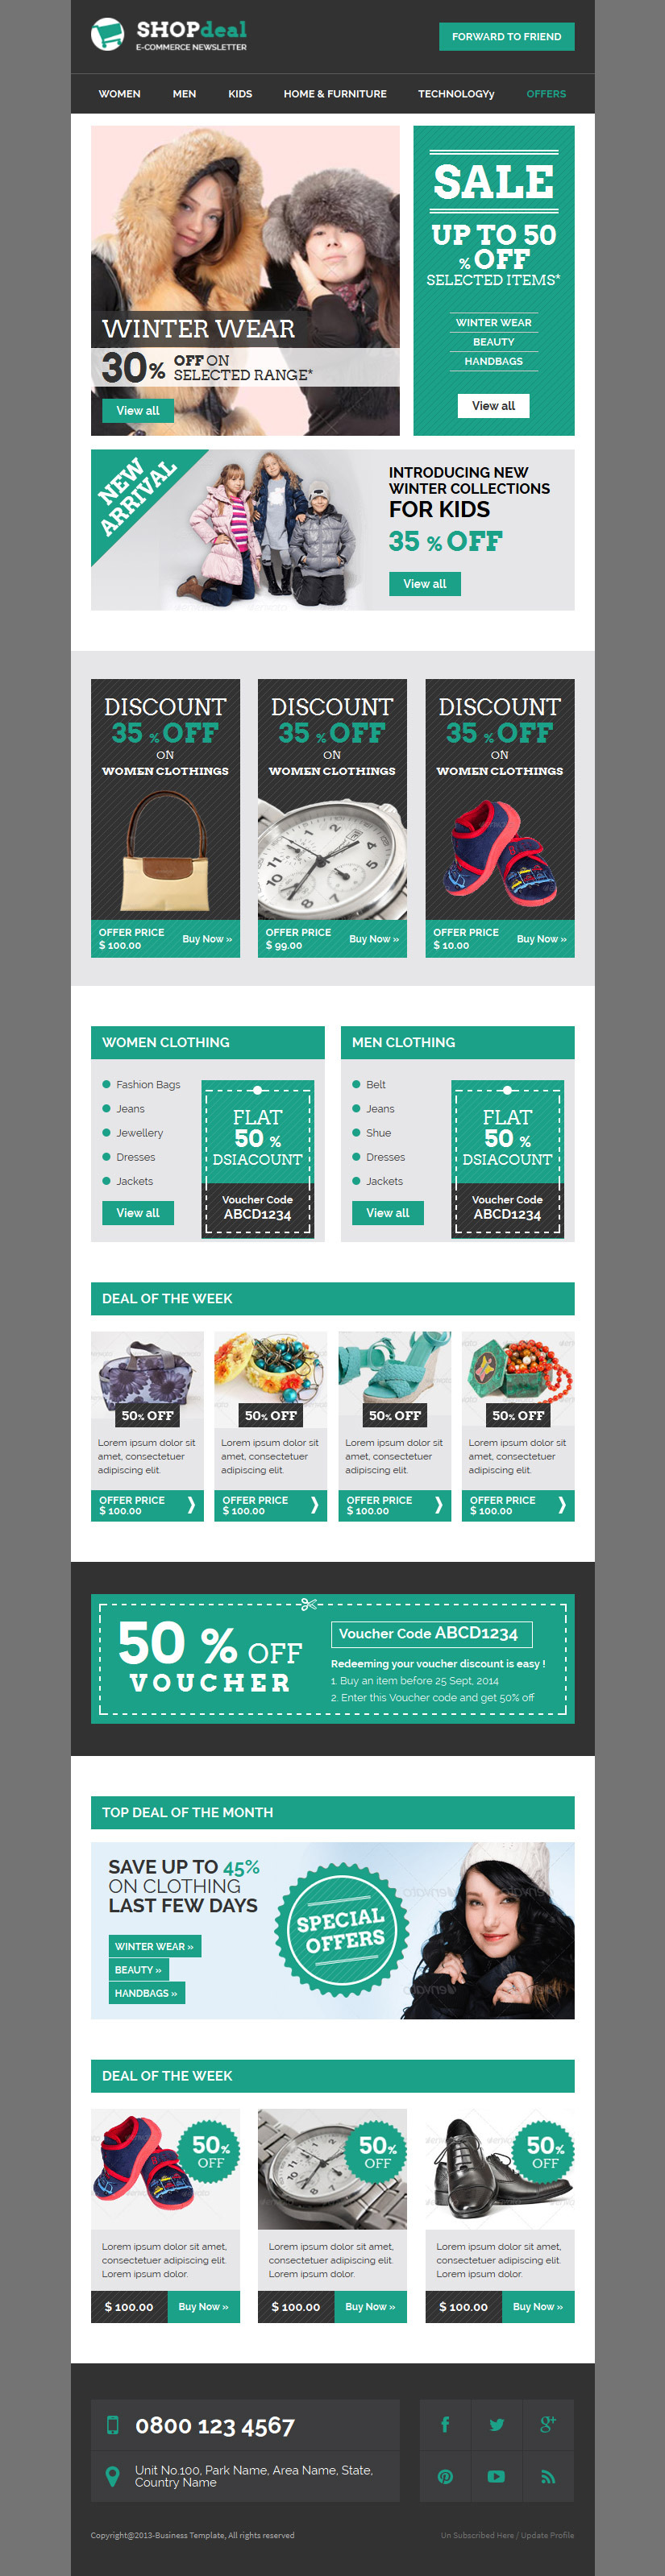 SHOPdeal Responsive Email Template With Builder by digith – Responsive Email Template